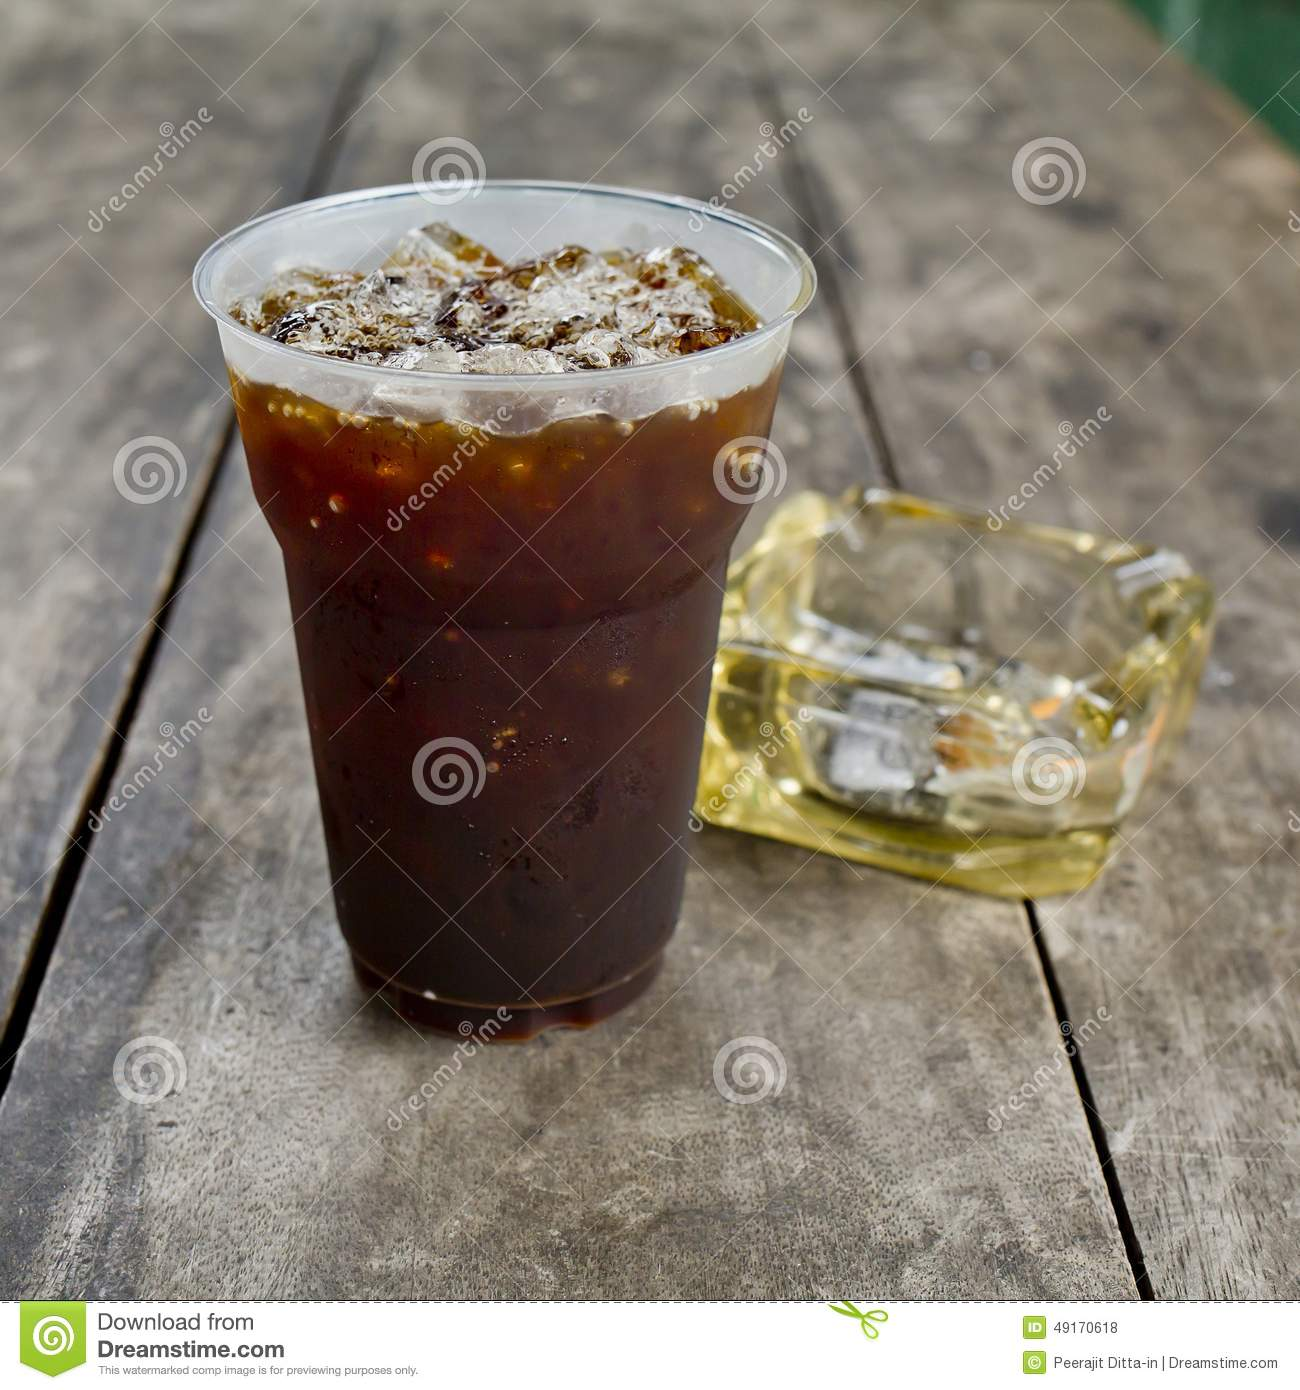 Americano Coffee To Go Delicious Ice Coffee Americano With Cigarette On The Old